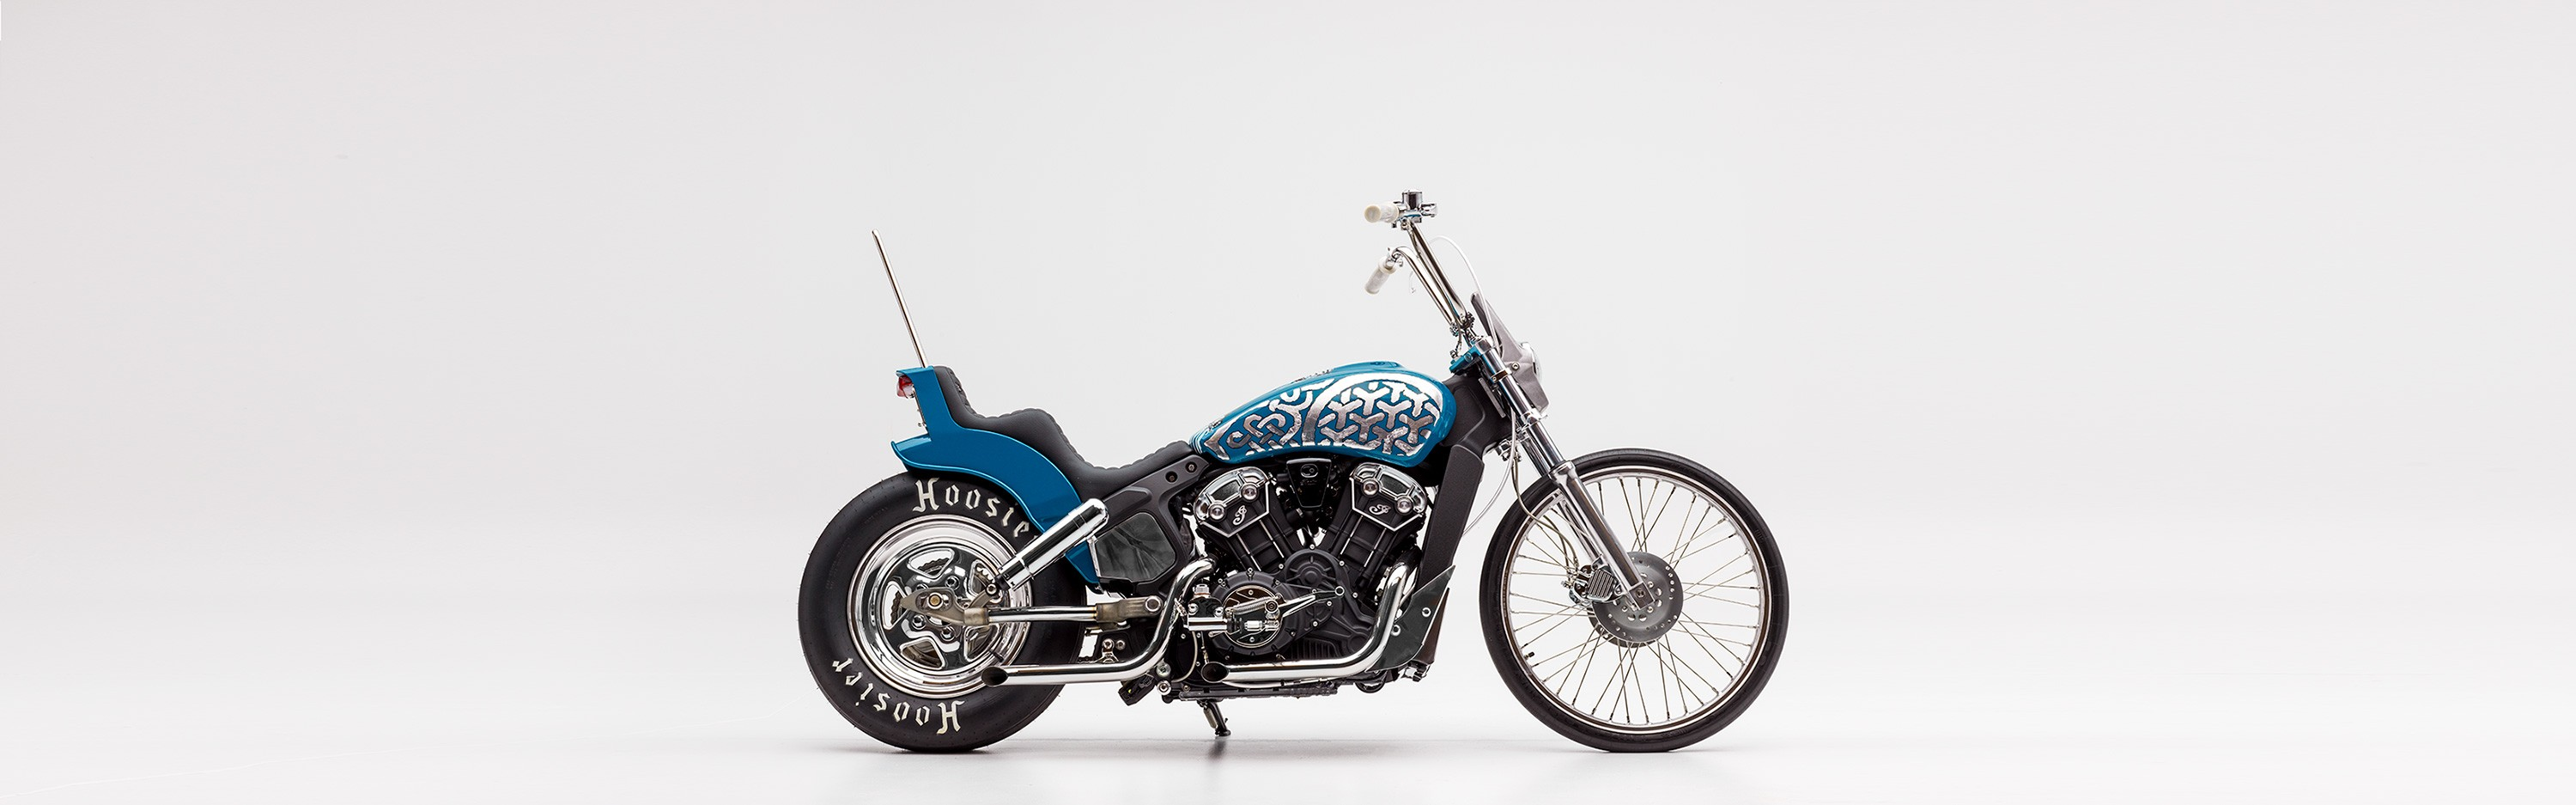 indian-motorcycle-the-wrench-scout-bobber-build-off-3